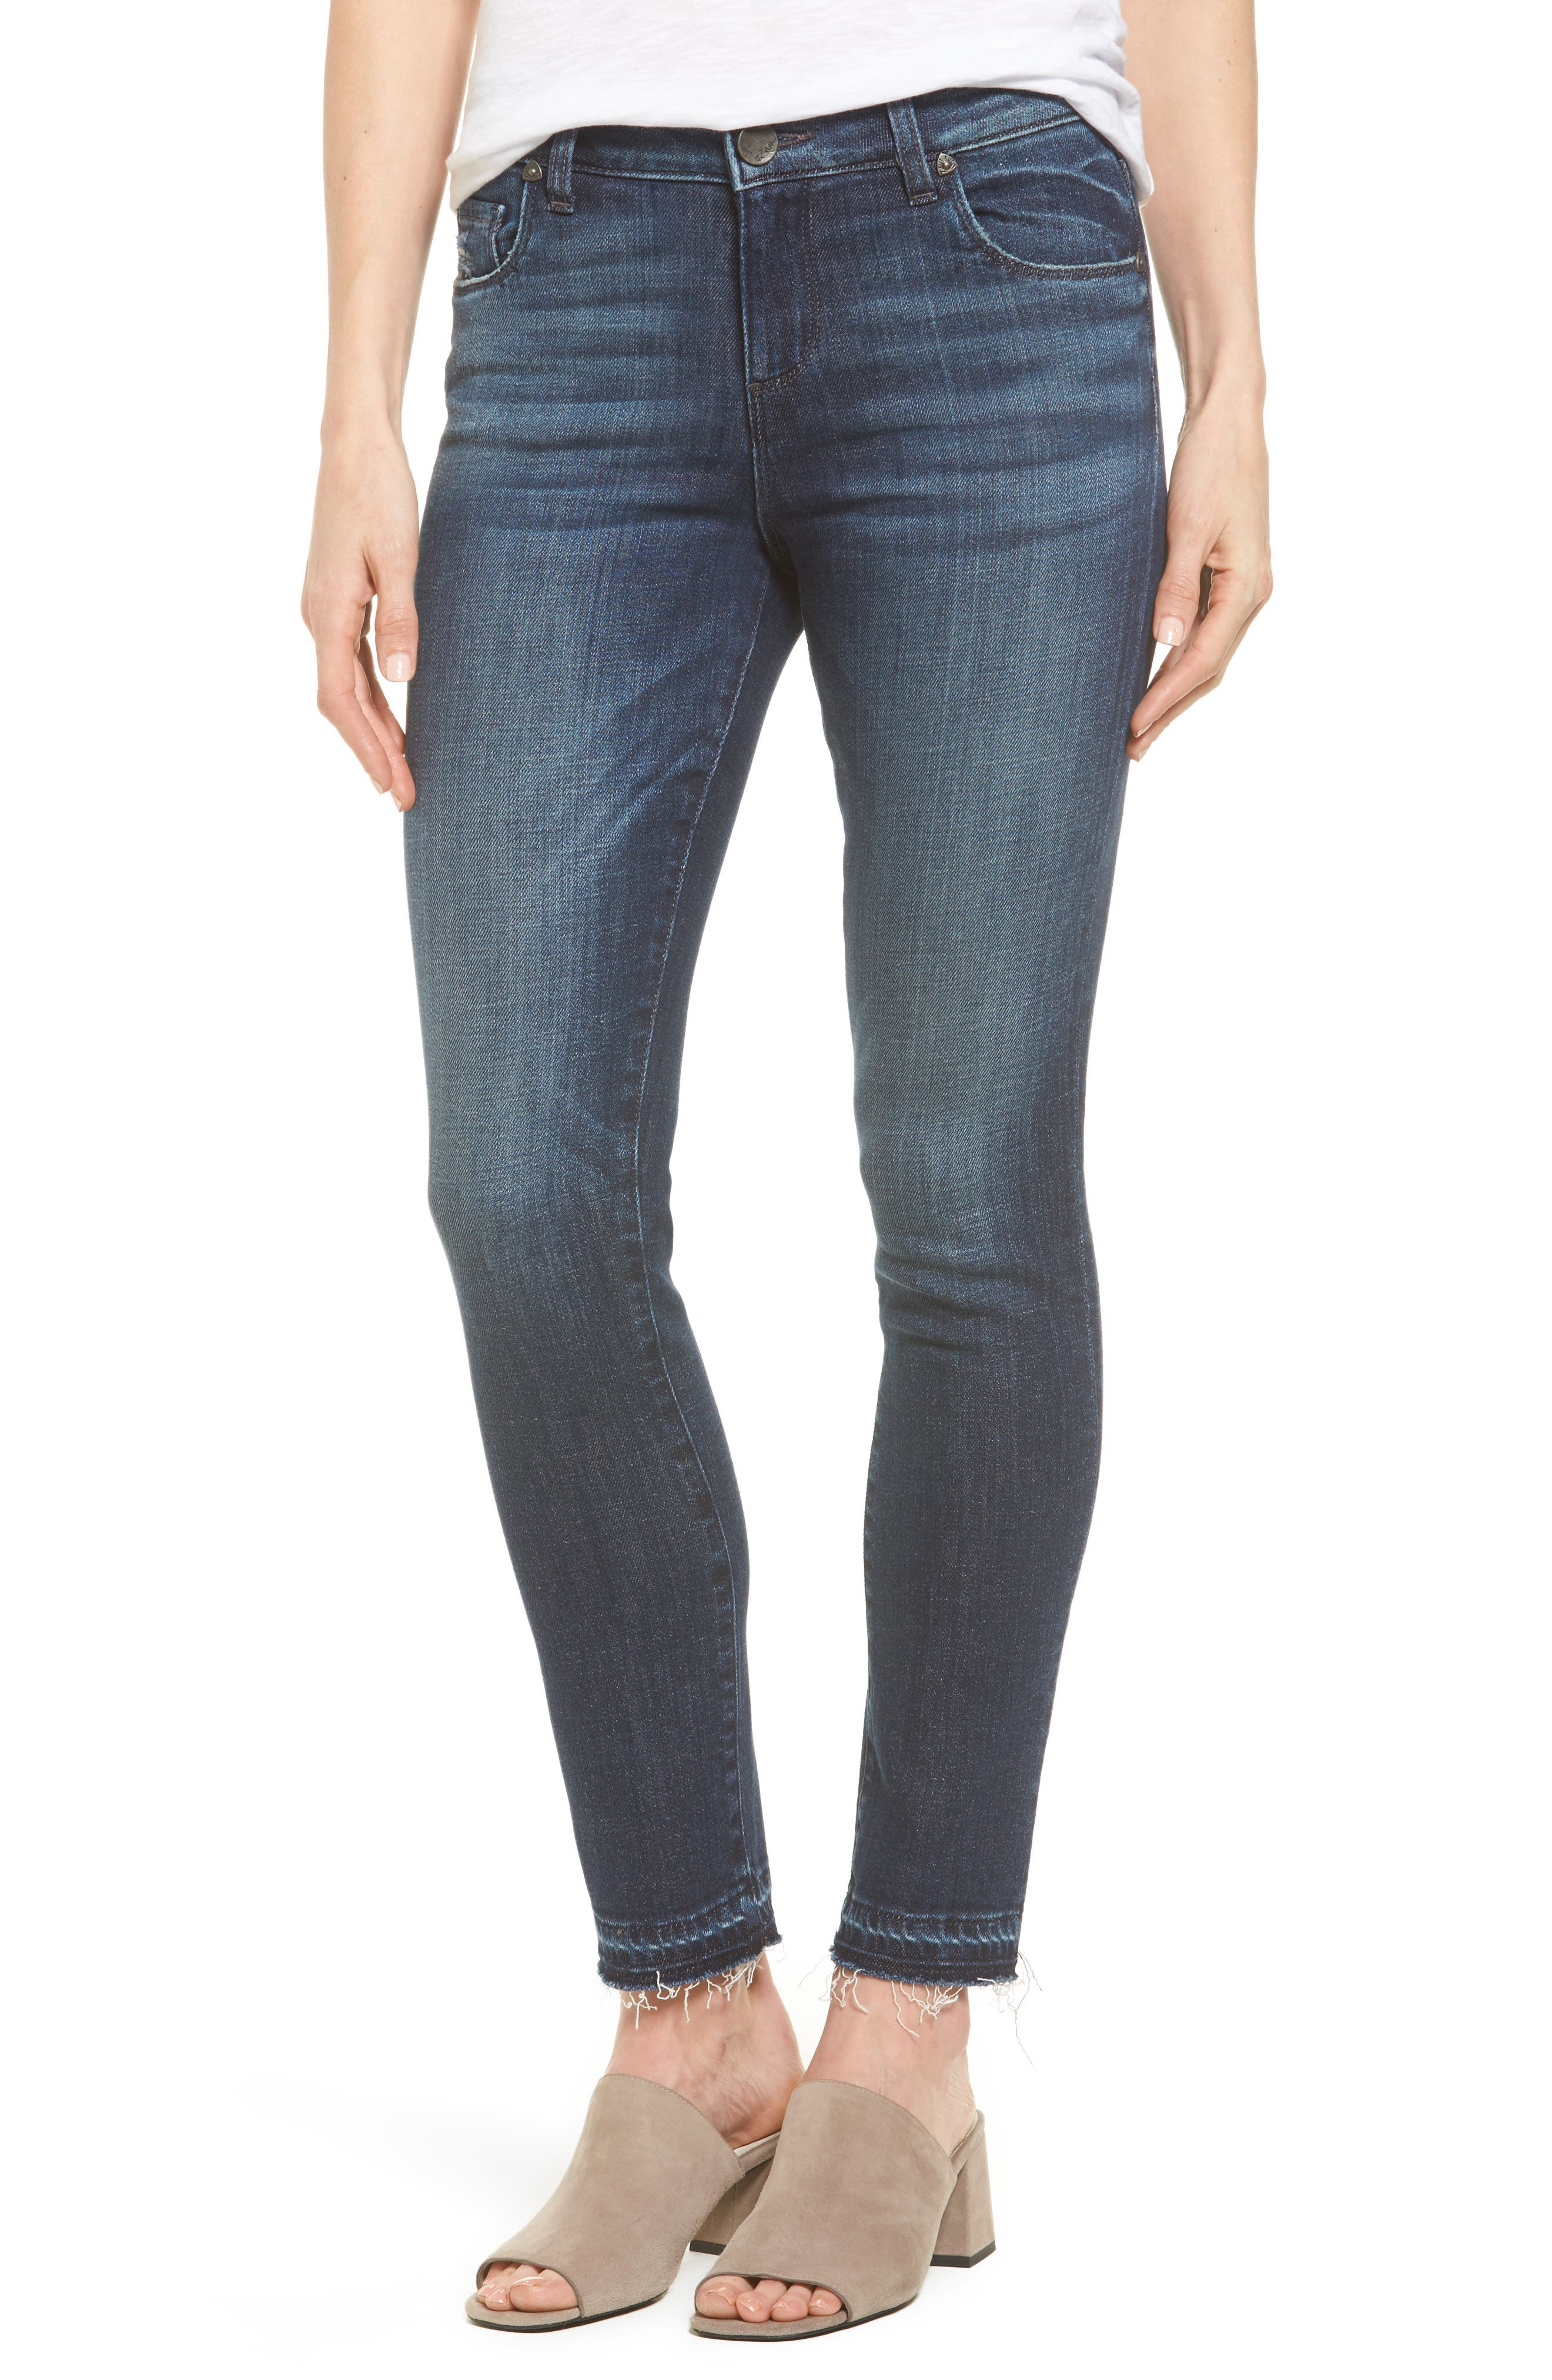 Reese Release Hem Ankle Jeans,                         Main,                         color, 428